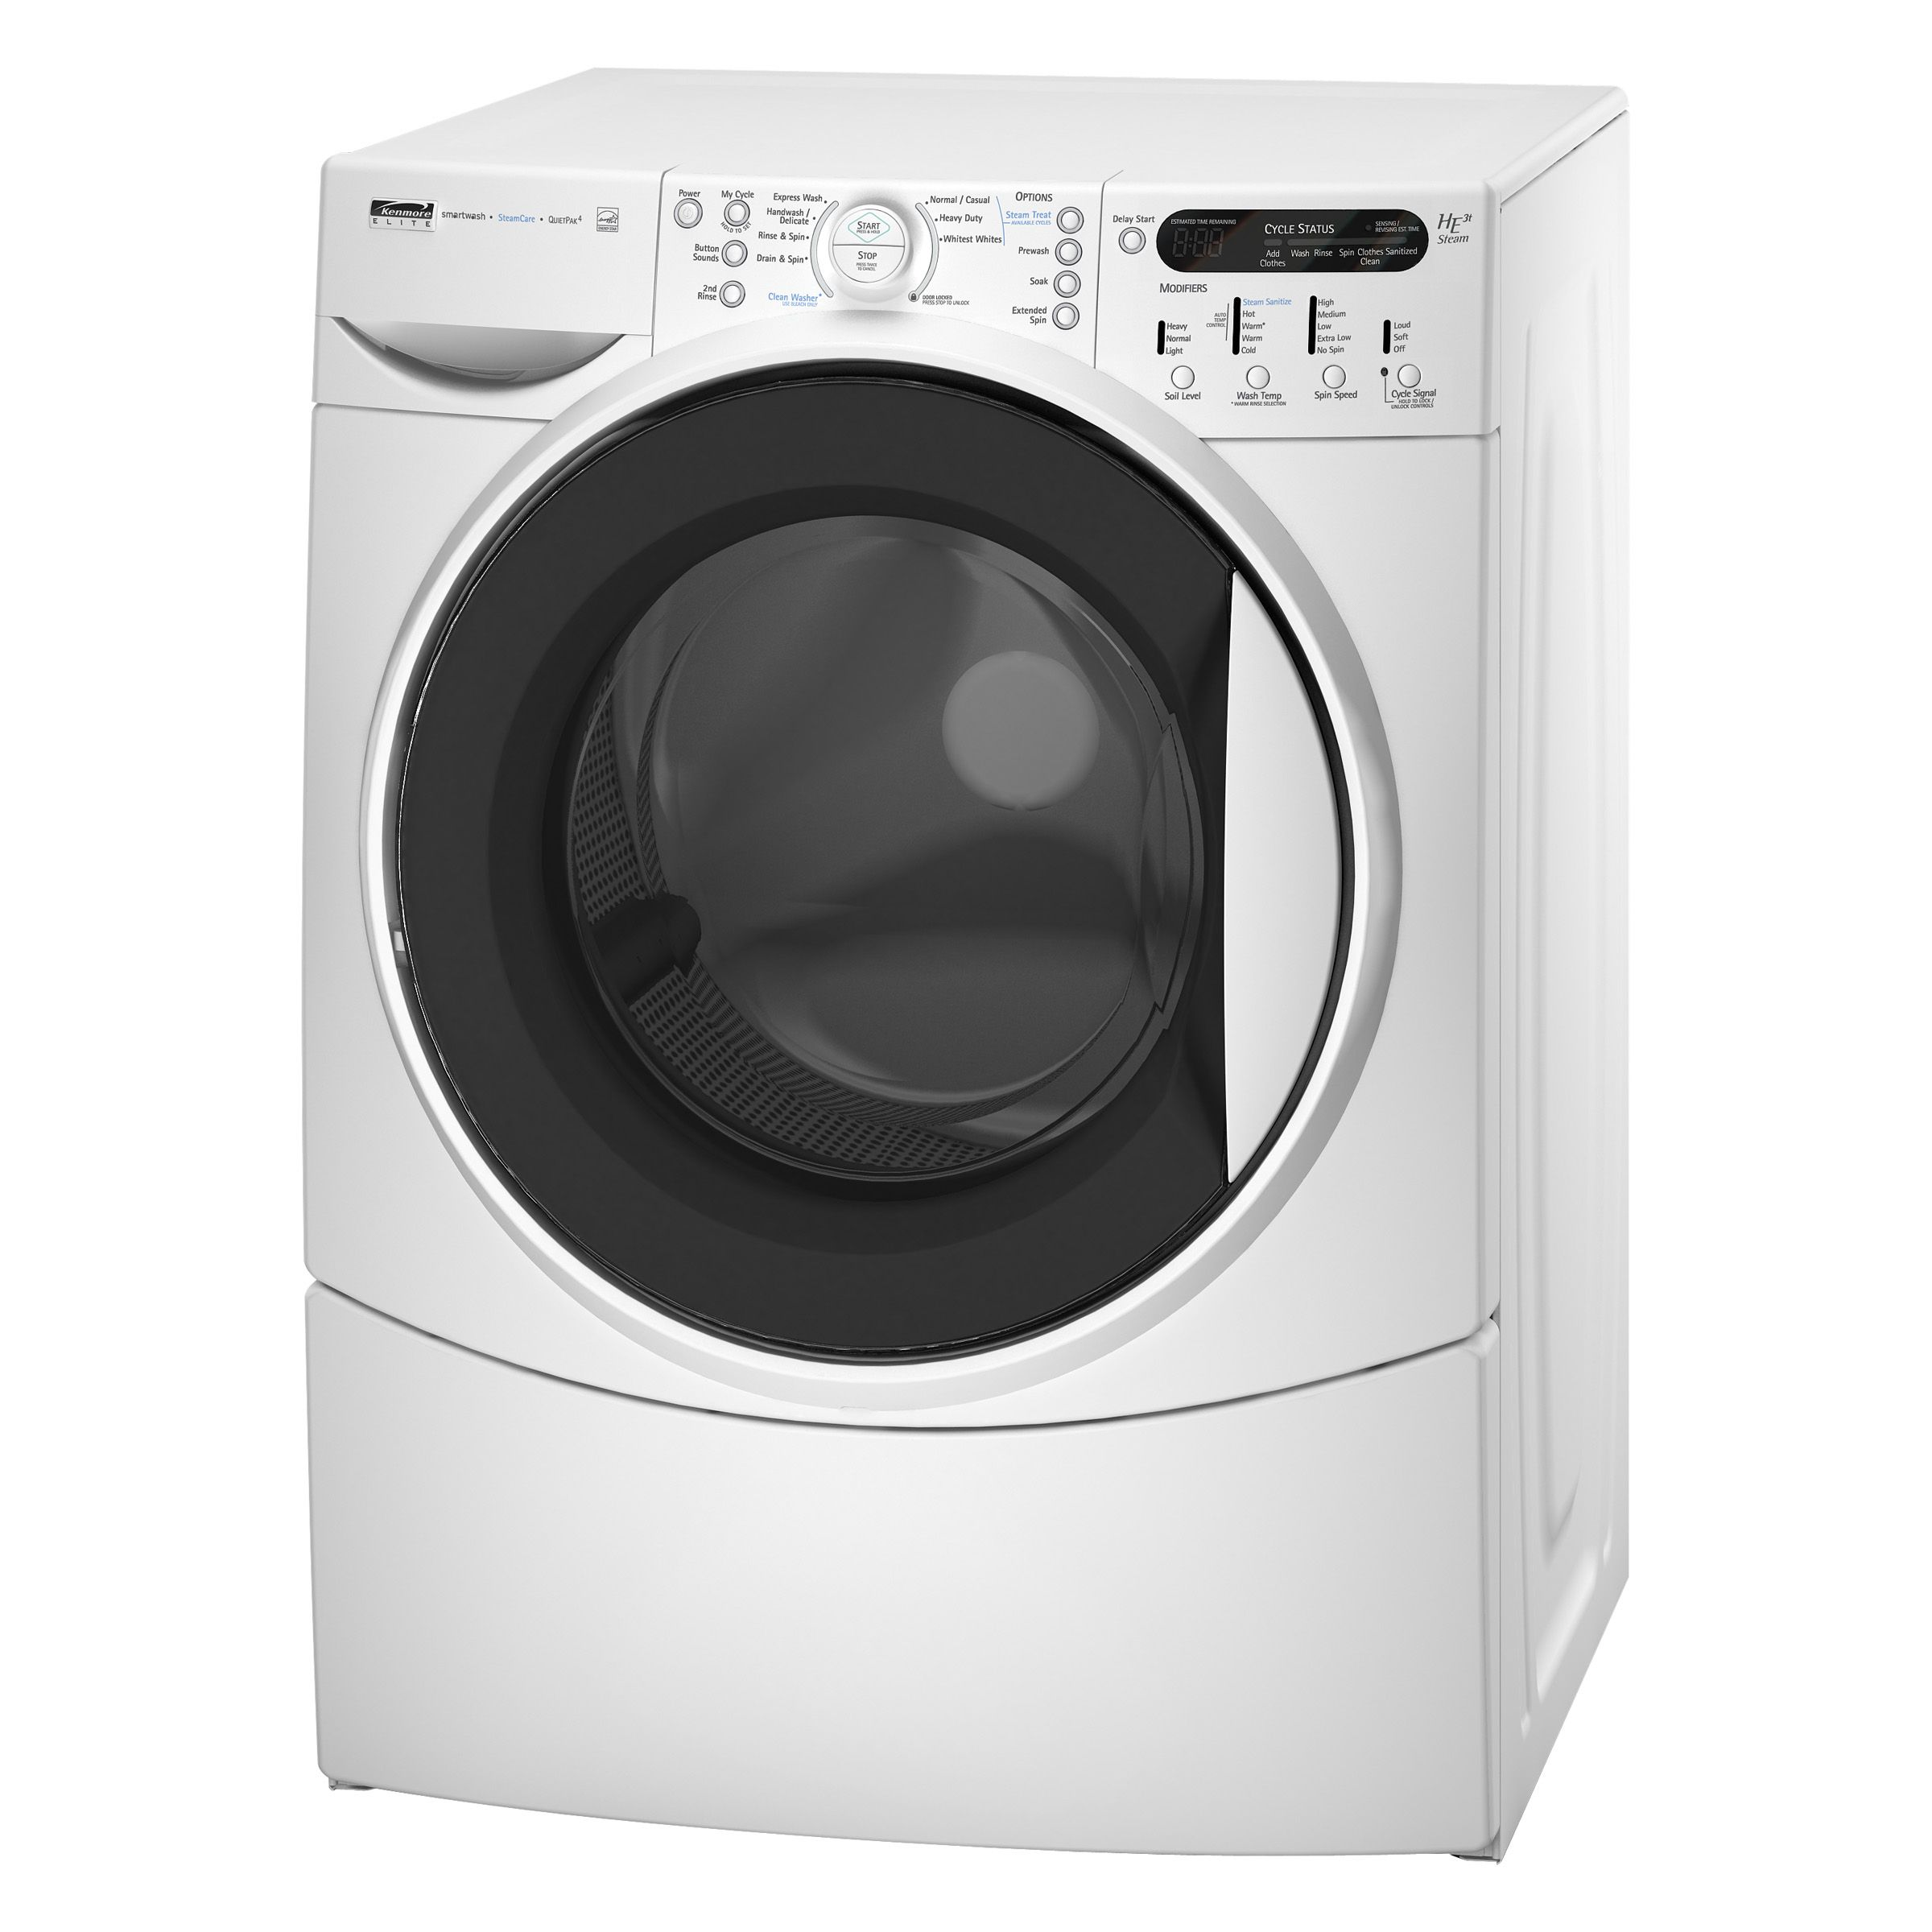 Kenmore Elite HE3t Steam™ 4.0 cu. ft. Front-Load King Size Capacity Plus Washer Washing Machine (4674)